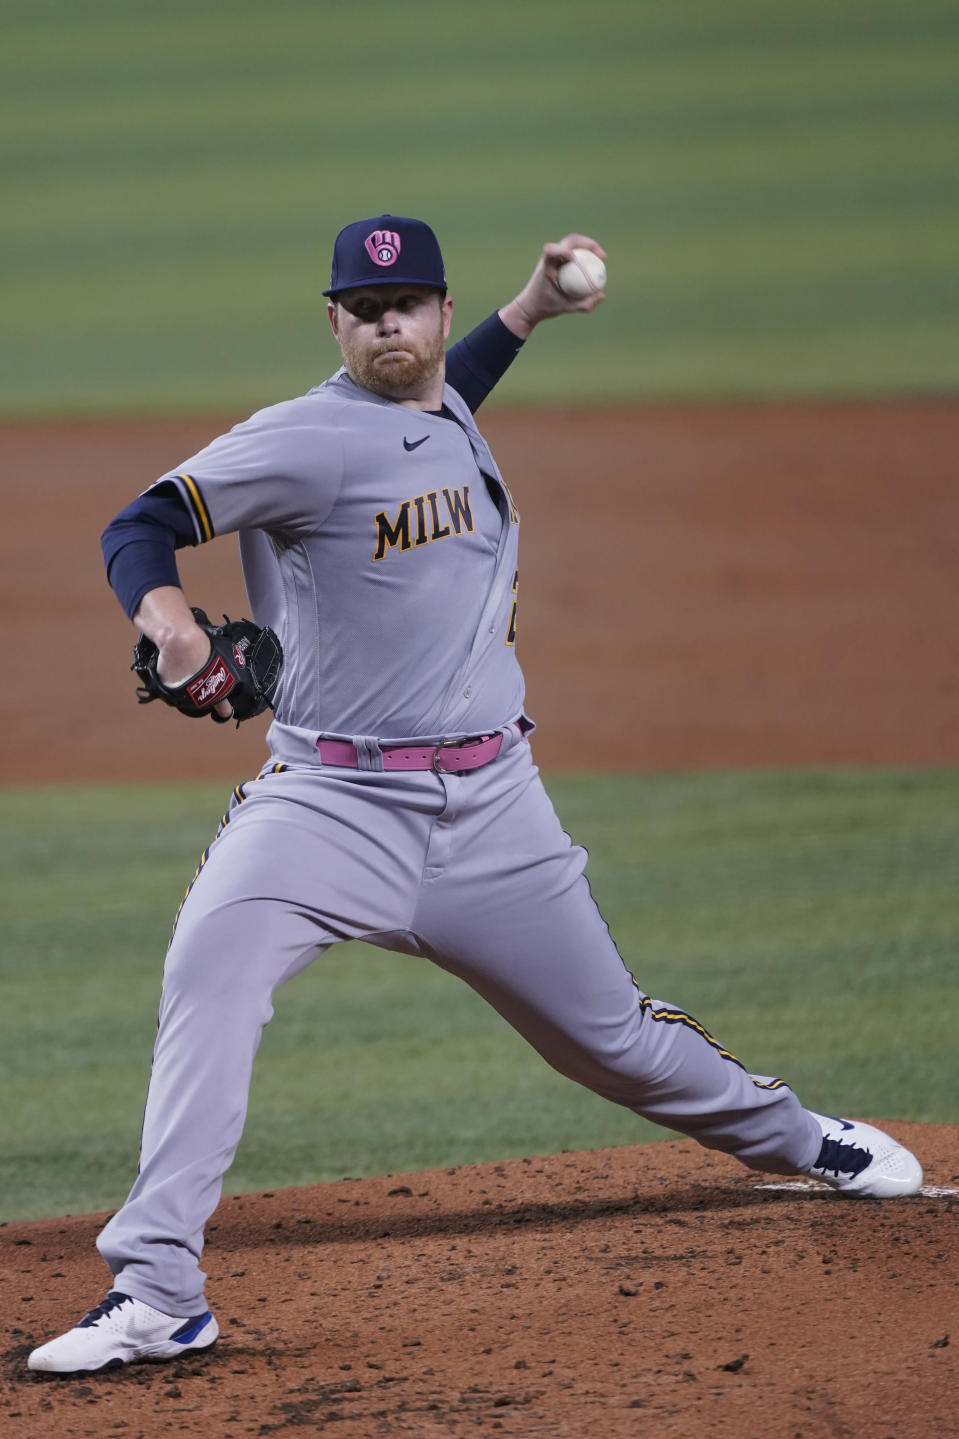 Milwaukee Brewers starting pitcher Brett Anderson throws during the first inning of a baseball game against the Miami Marlins, Sunday, May 9, 2021, in Miami. (AP Photo/Marta Lavandier)